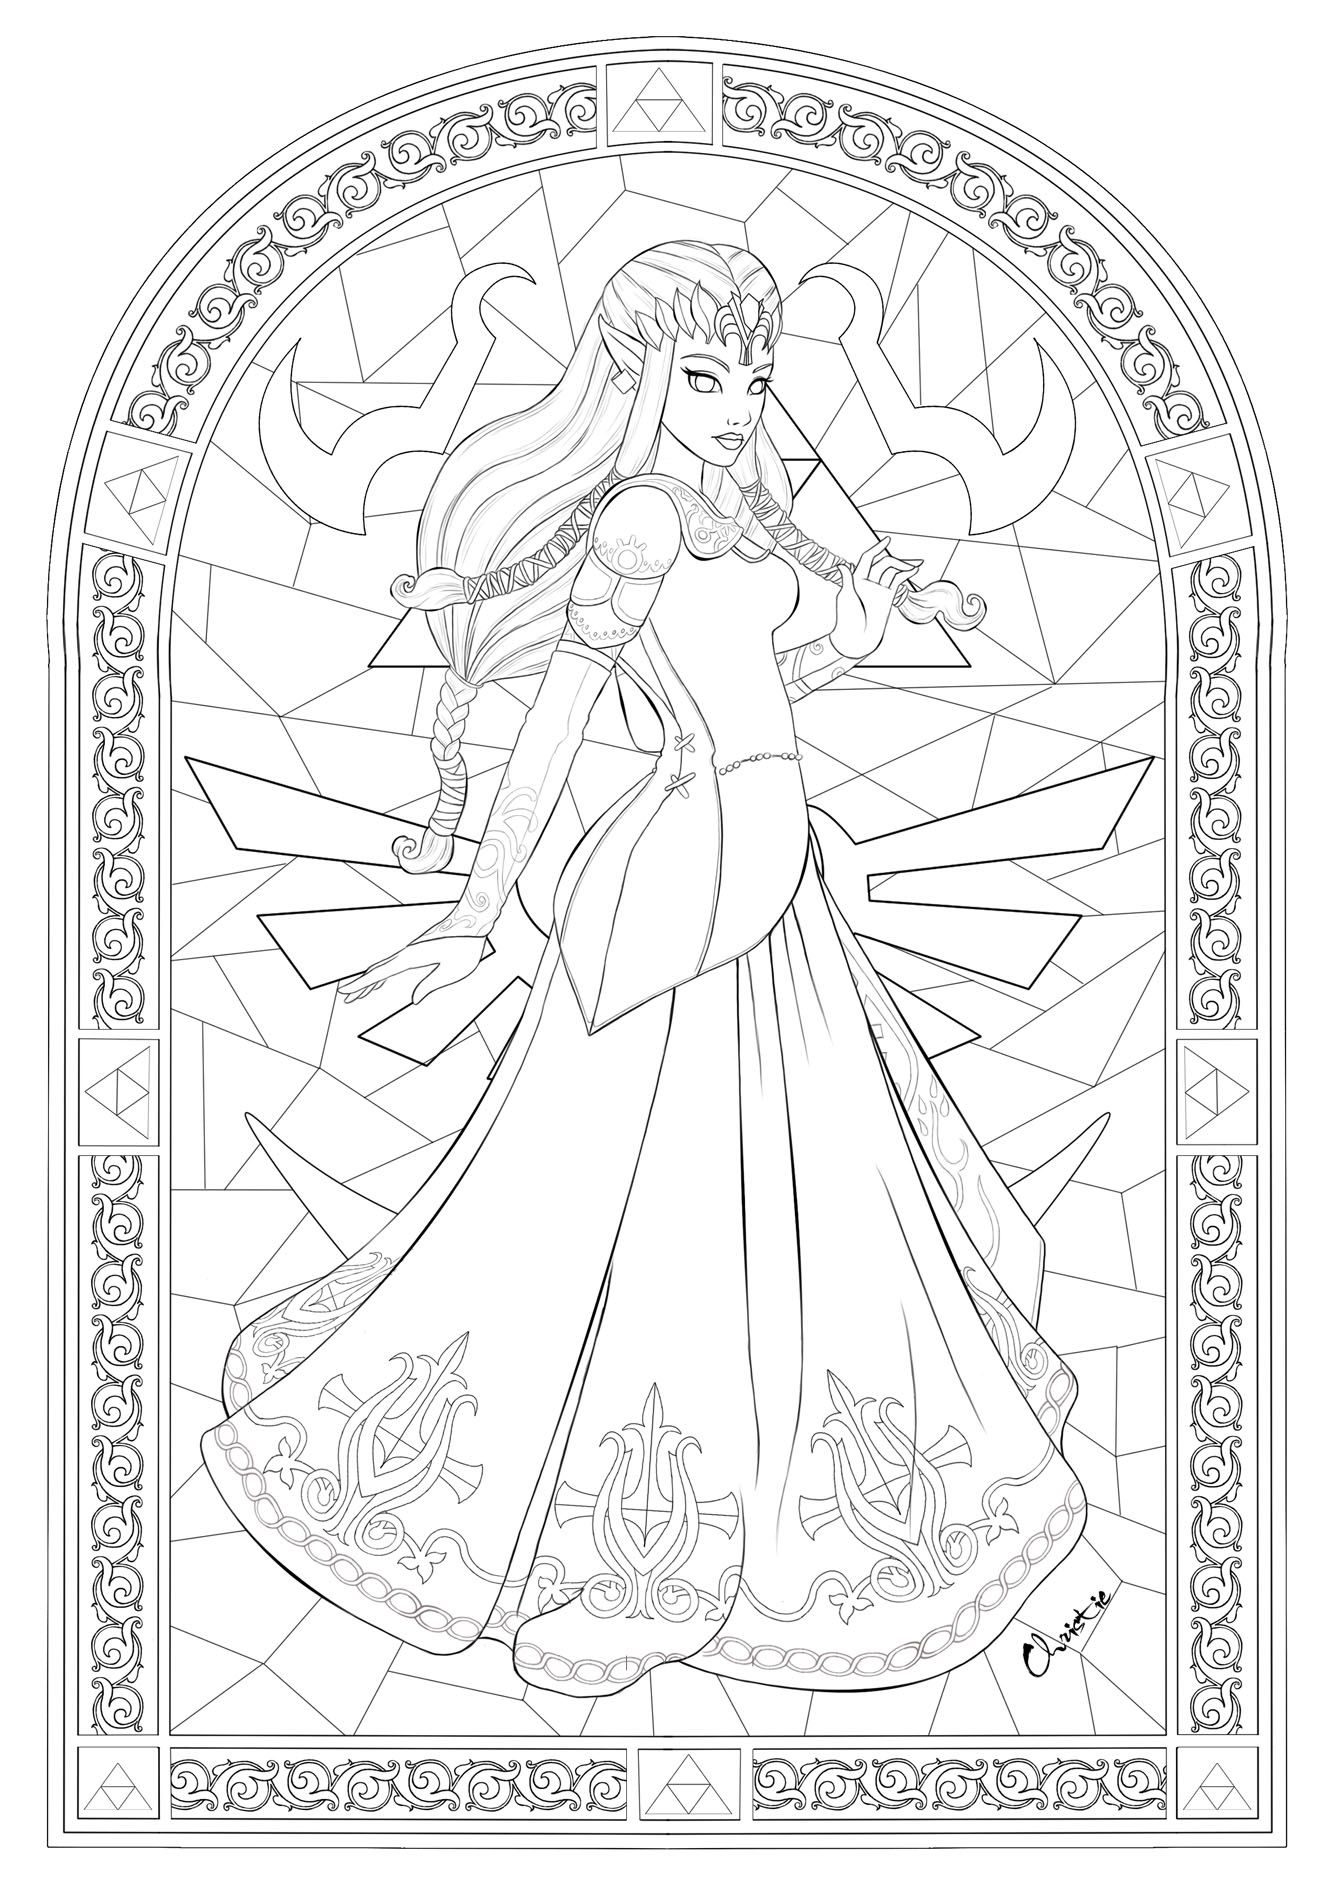 Stained glass | Coloring pages for teens/adults | Pinterest | Glass ...